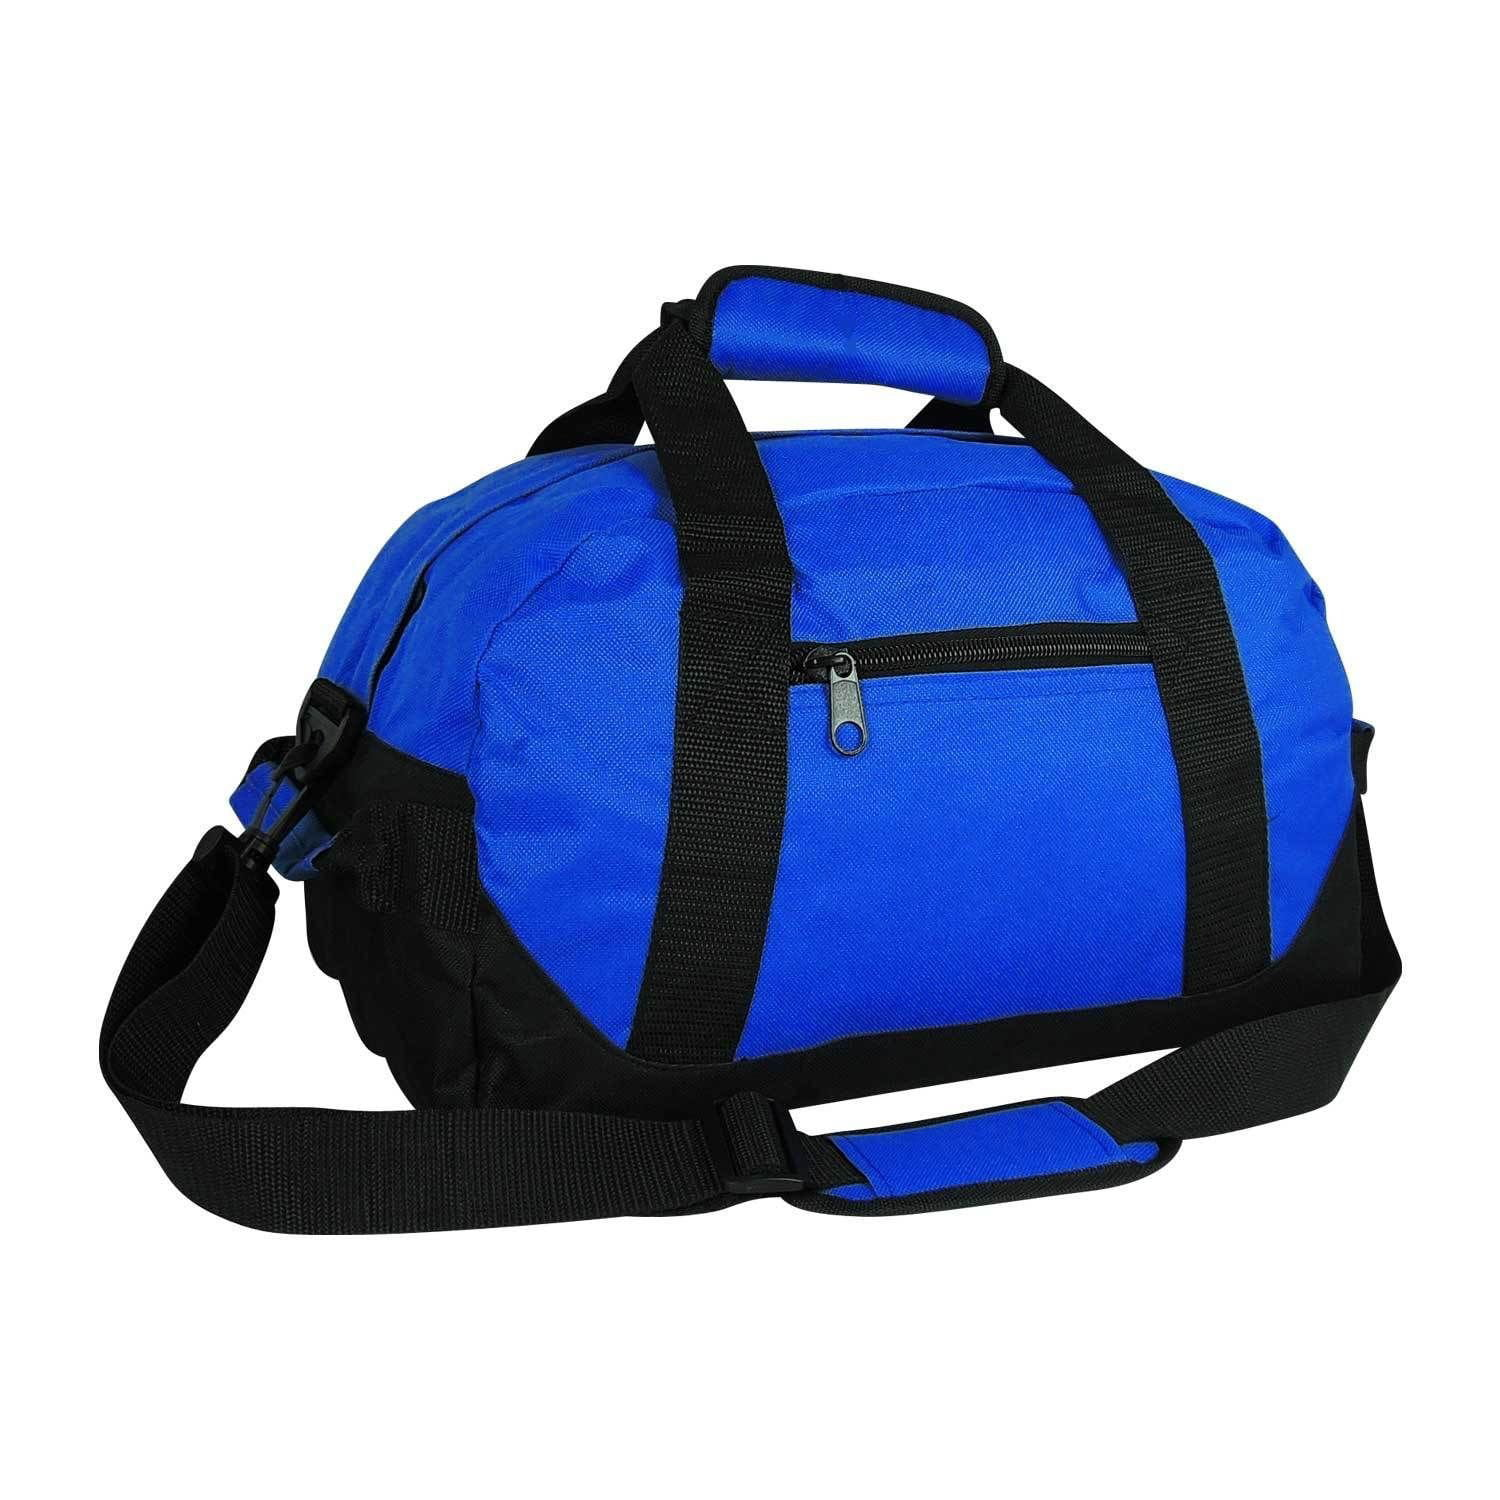 "iEquip 12"" 14"" 18"" 21"" Duffle Bag, Gym, Travel Bag Two Tone by"